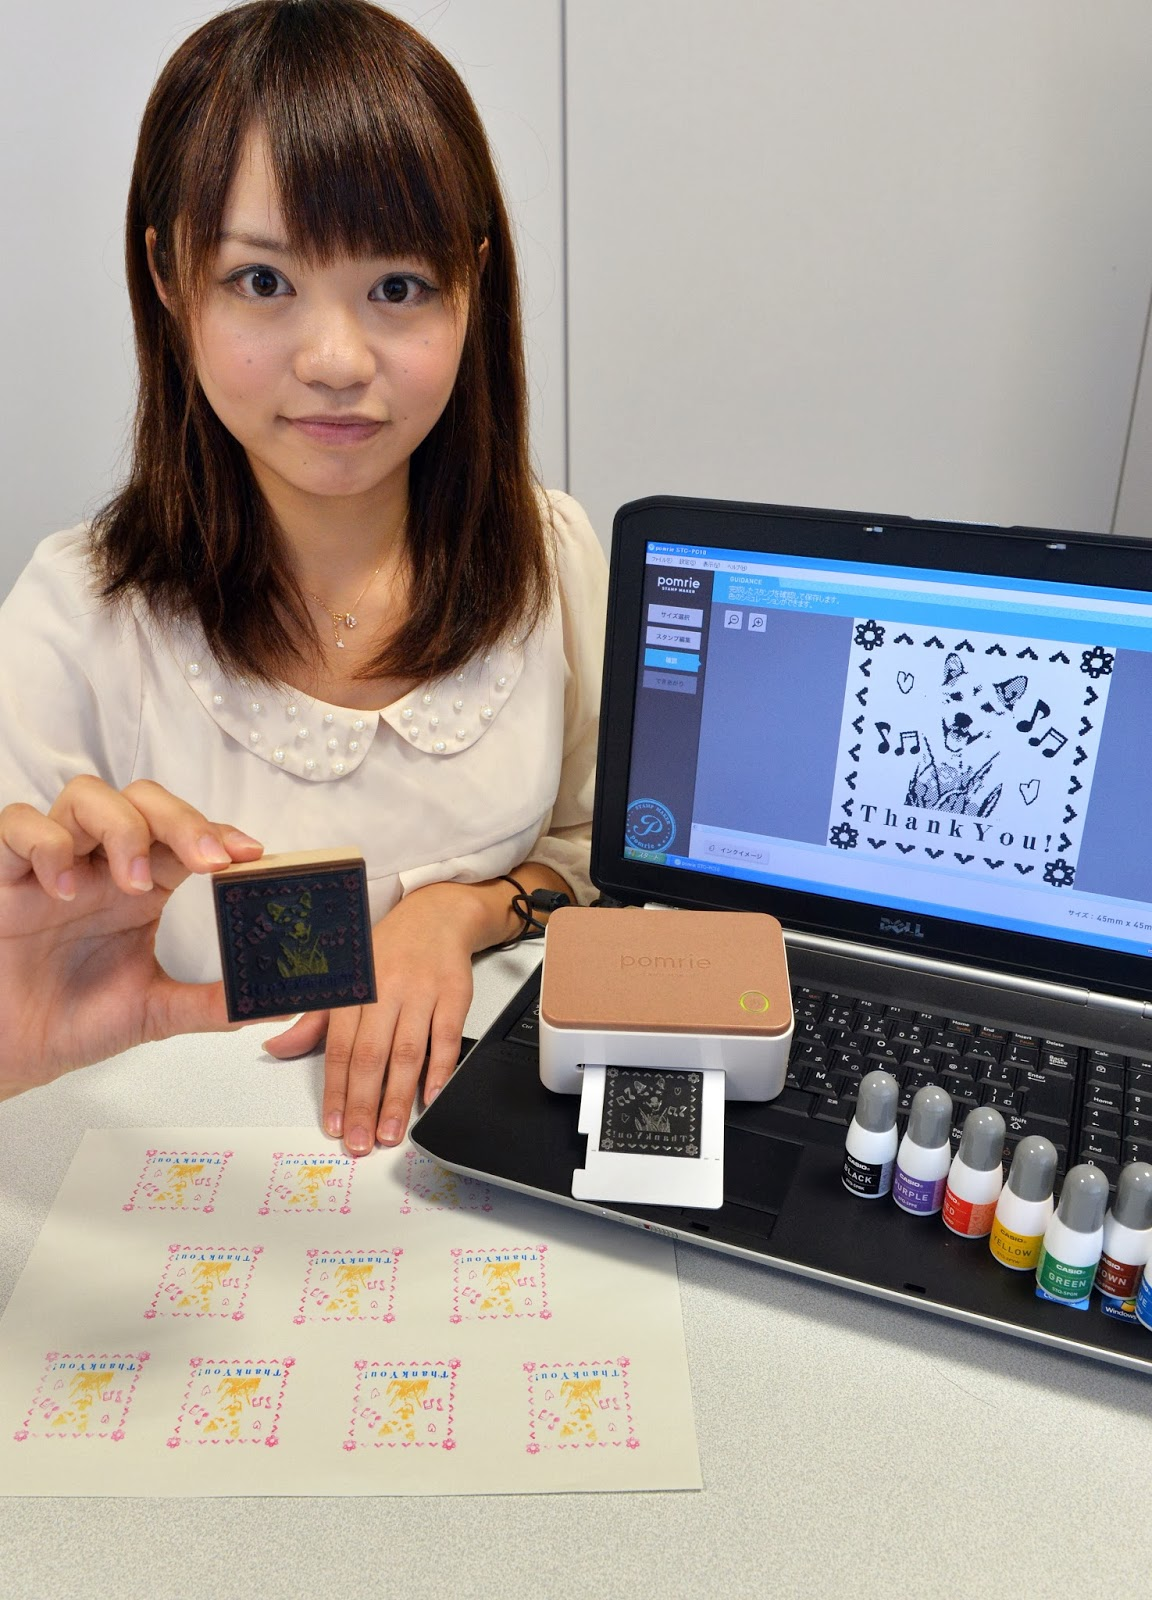 Casio, Color, Company, Computer, Device, Electronic, Employee, Girl, Headquarters, Information Technology, Ink Stamp, IT, Japan, Pomrie, Science, Stamp, Stamp Maker, Technology, Tokyo, Worker,